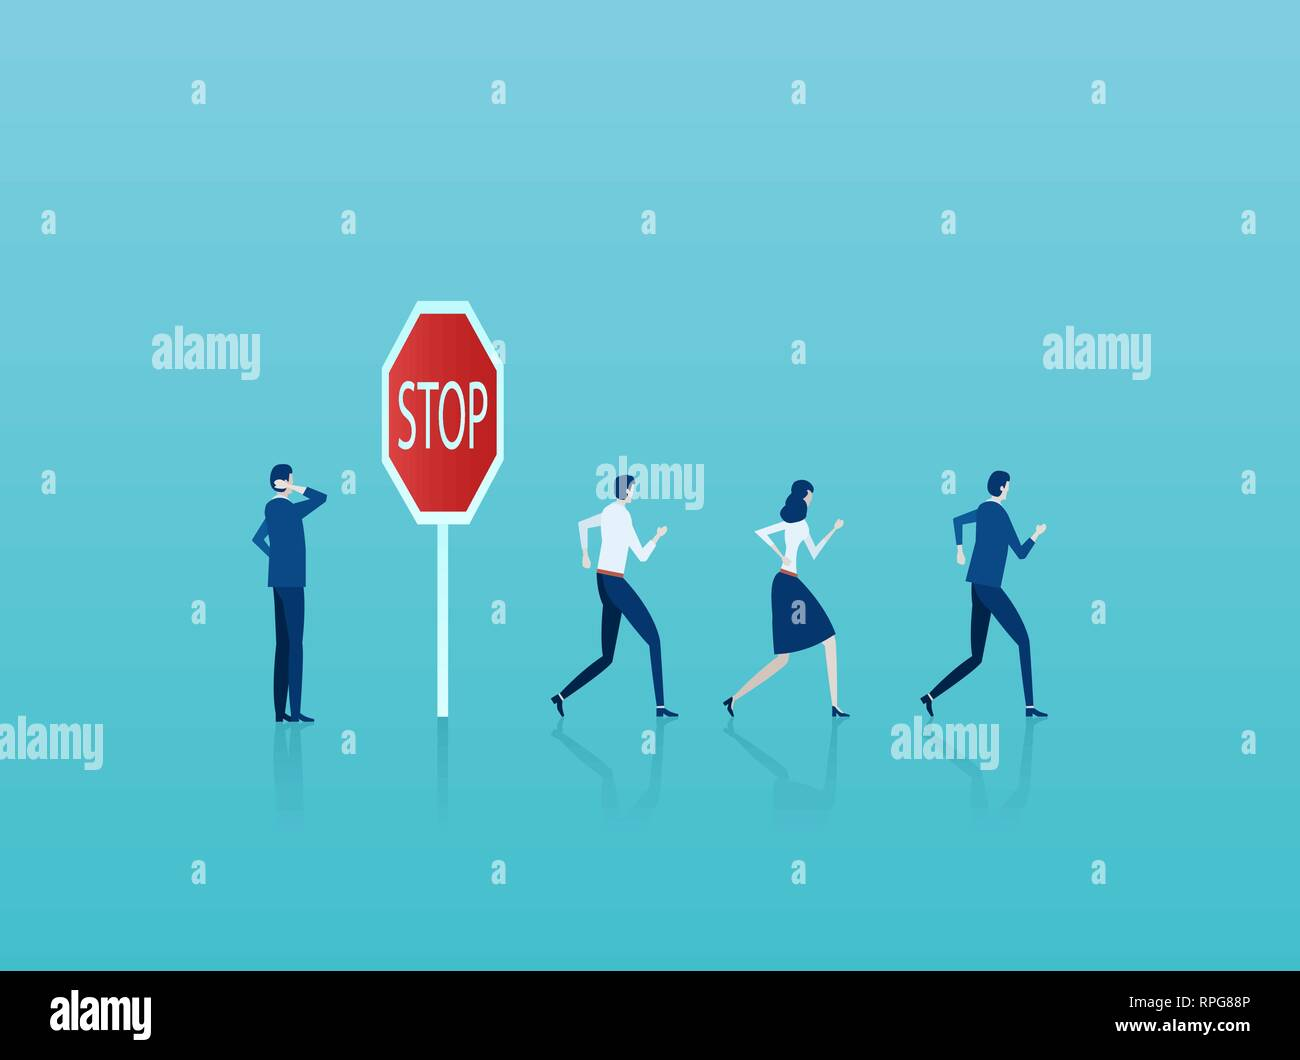 Business risk concept. Vector of a businessman thinking of potential risks at warning stop sign while crowd of businesspeople running forward - Stock Vector